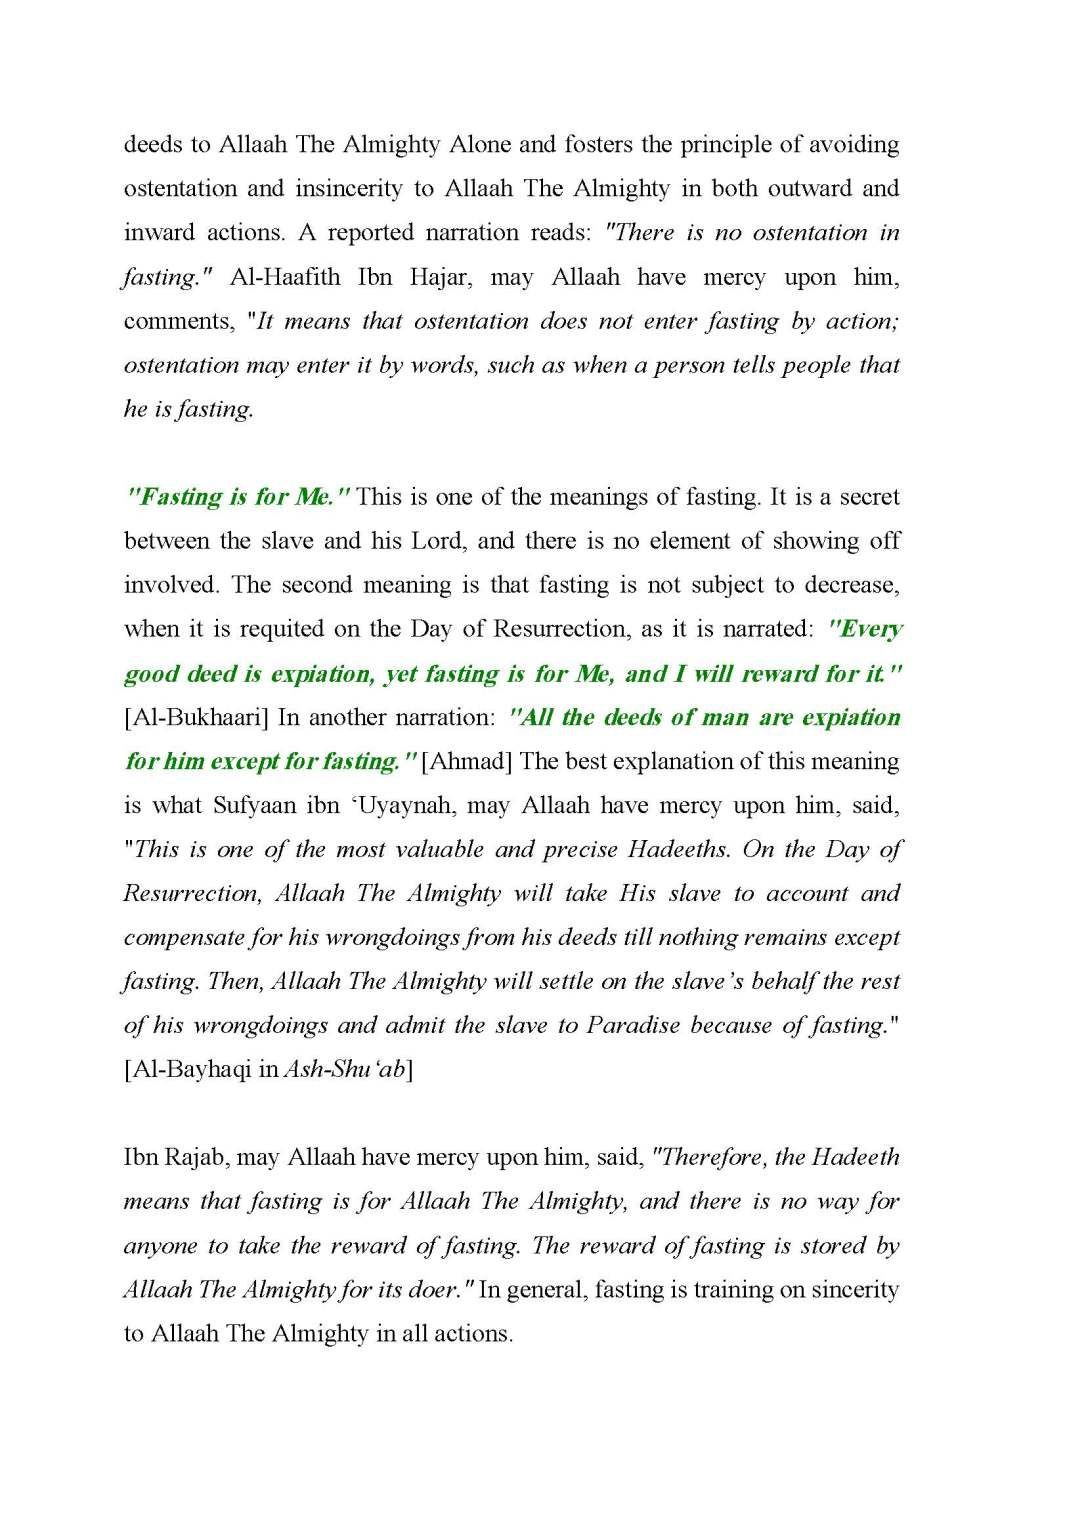 Benefits_and_Secrets_of_Fasting_Page_09